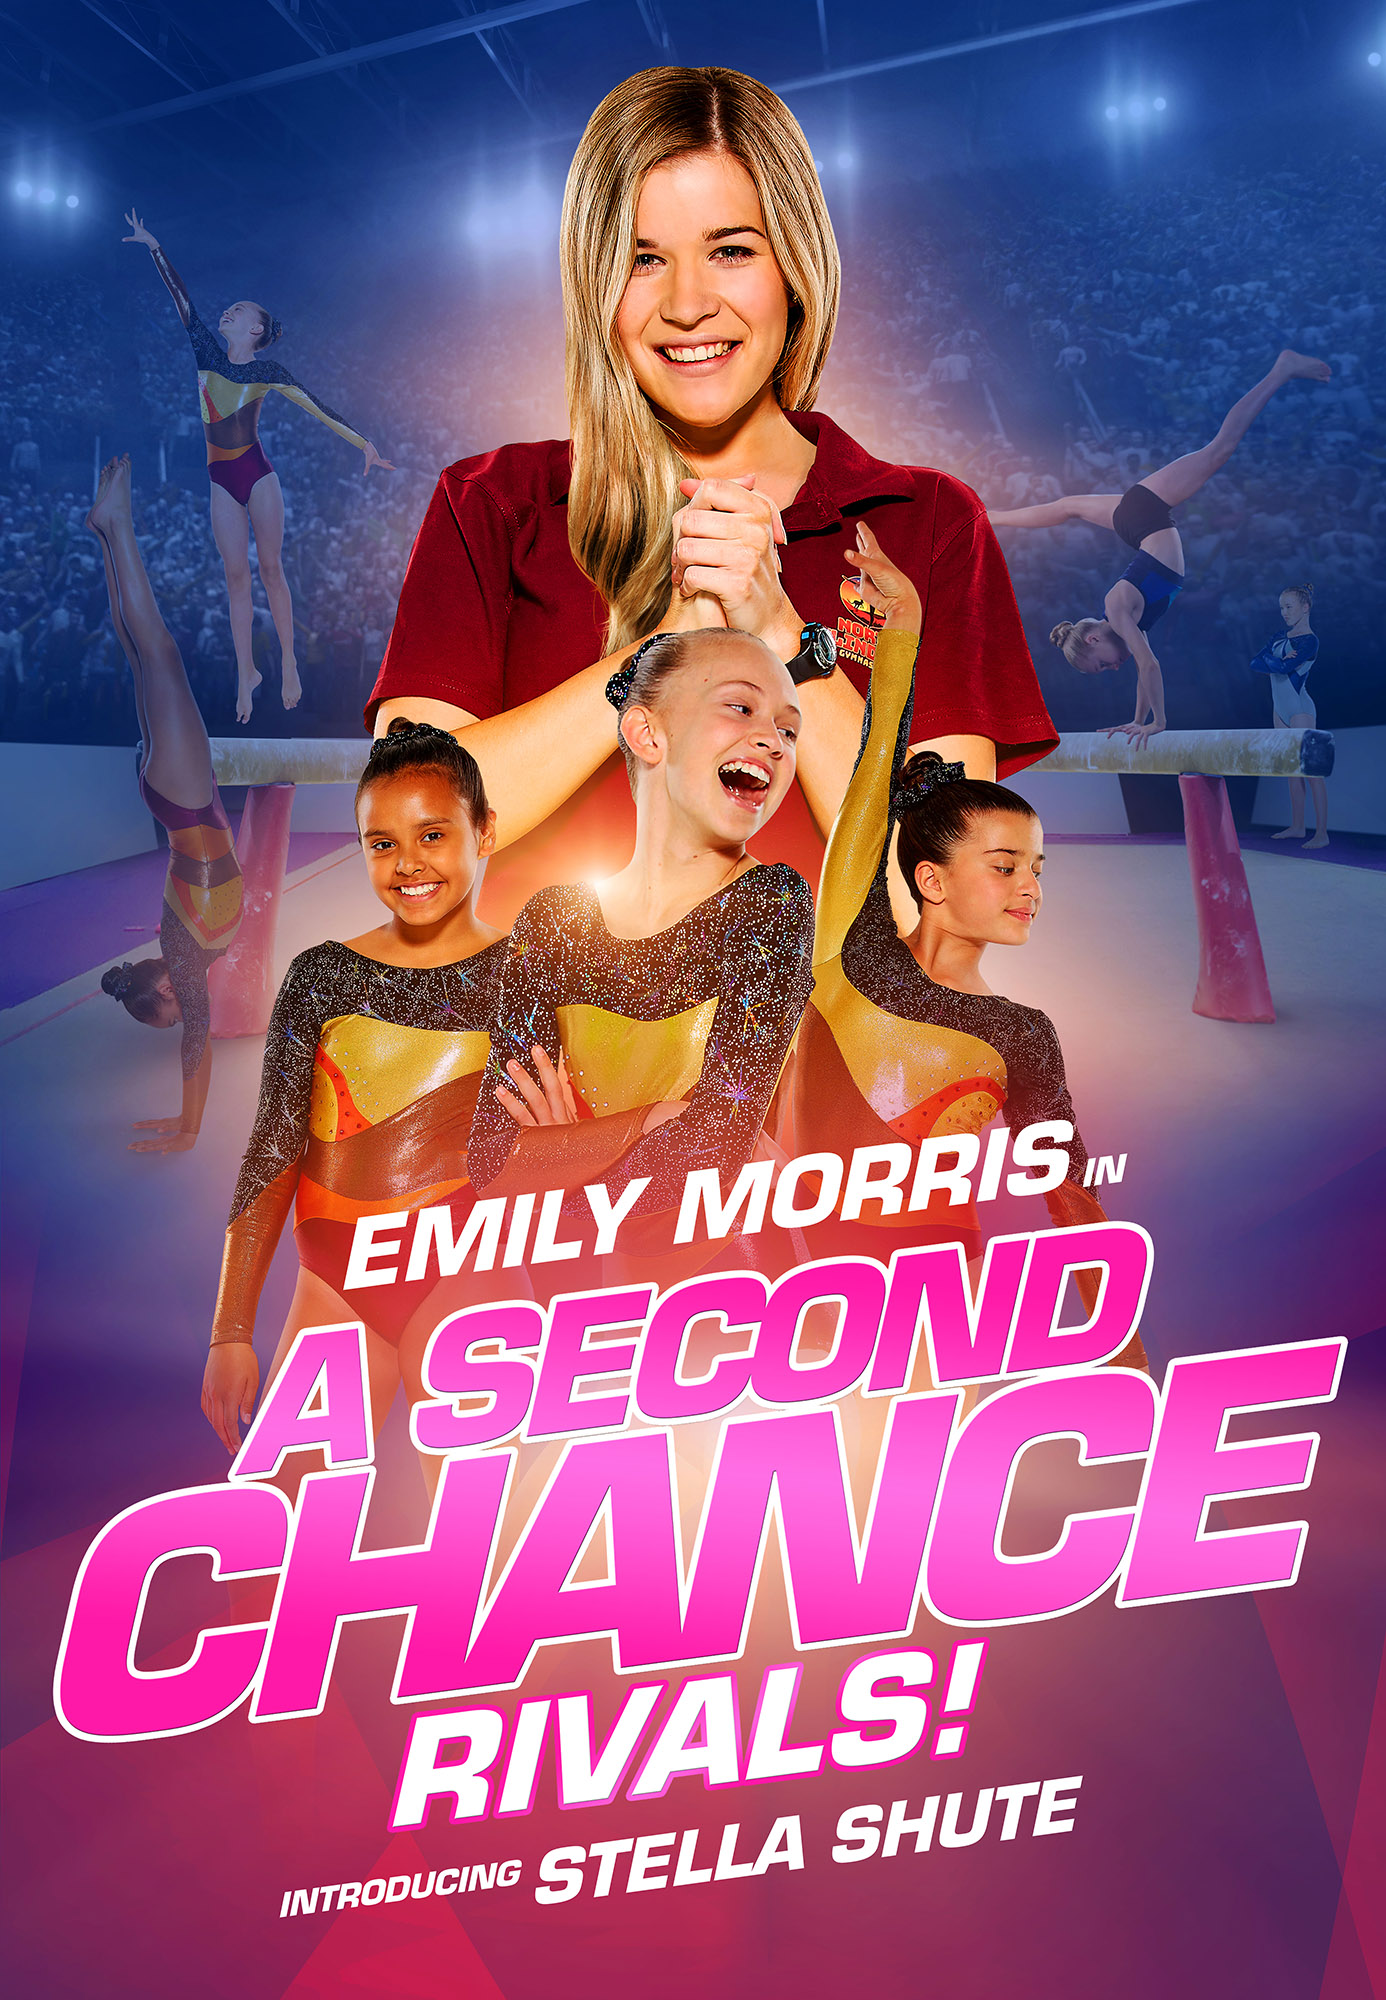 a second chance gymnastics full movie watch online free